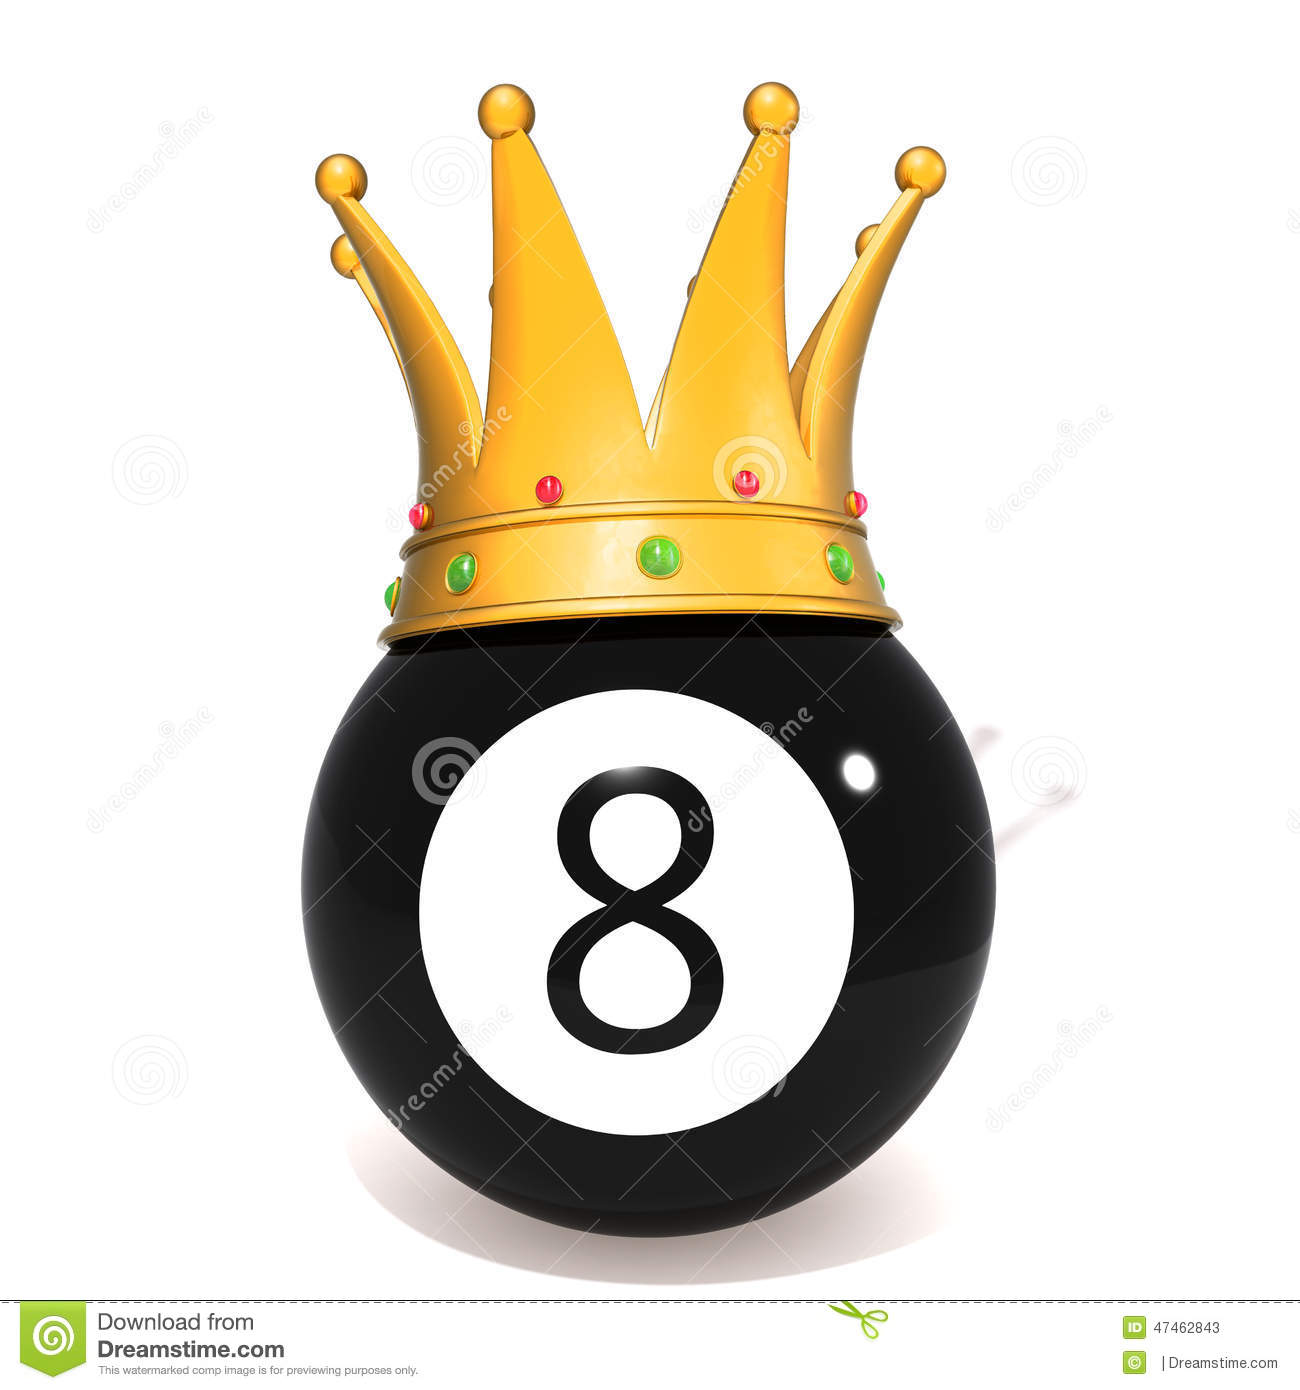 Eight ball with gold crown stock illustration. Image of club - 47462843